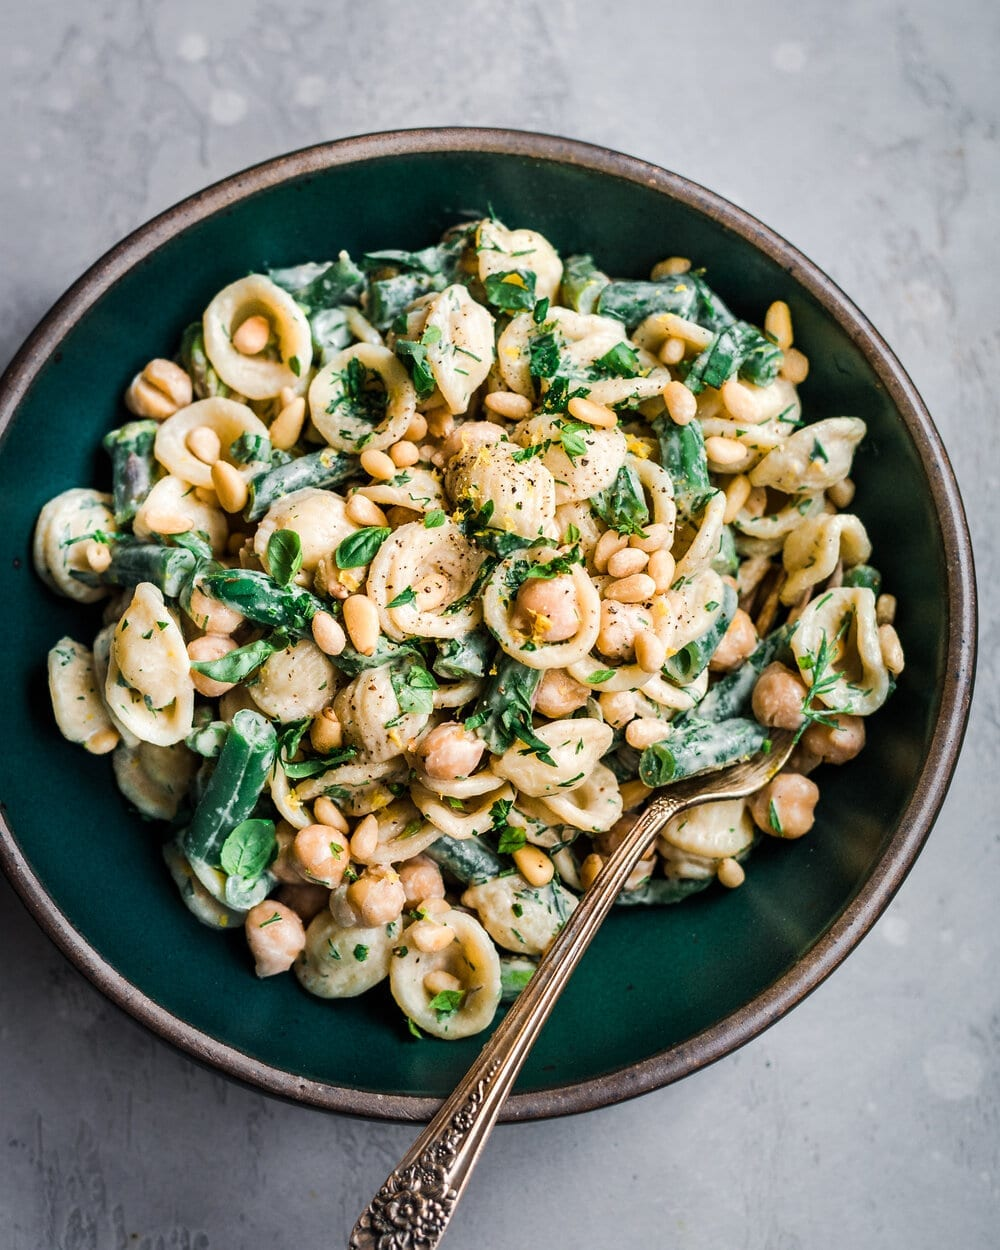 tahini greens pasta salad 2 (1 of 1).jpg